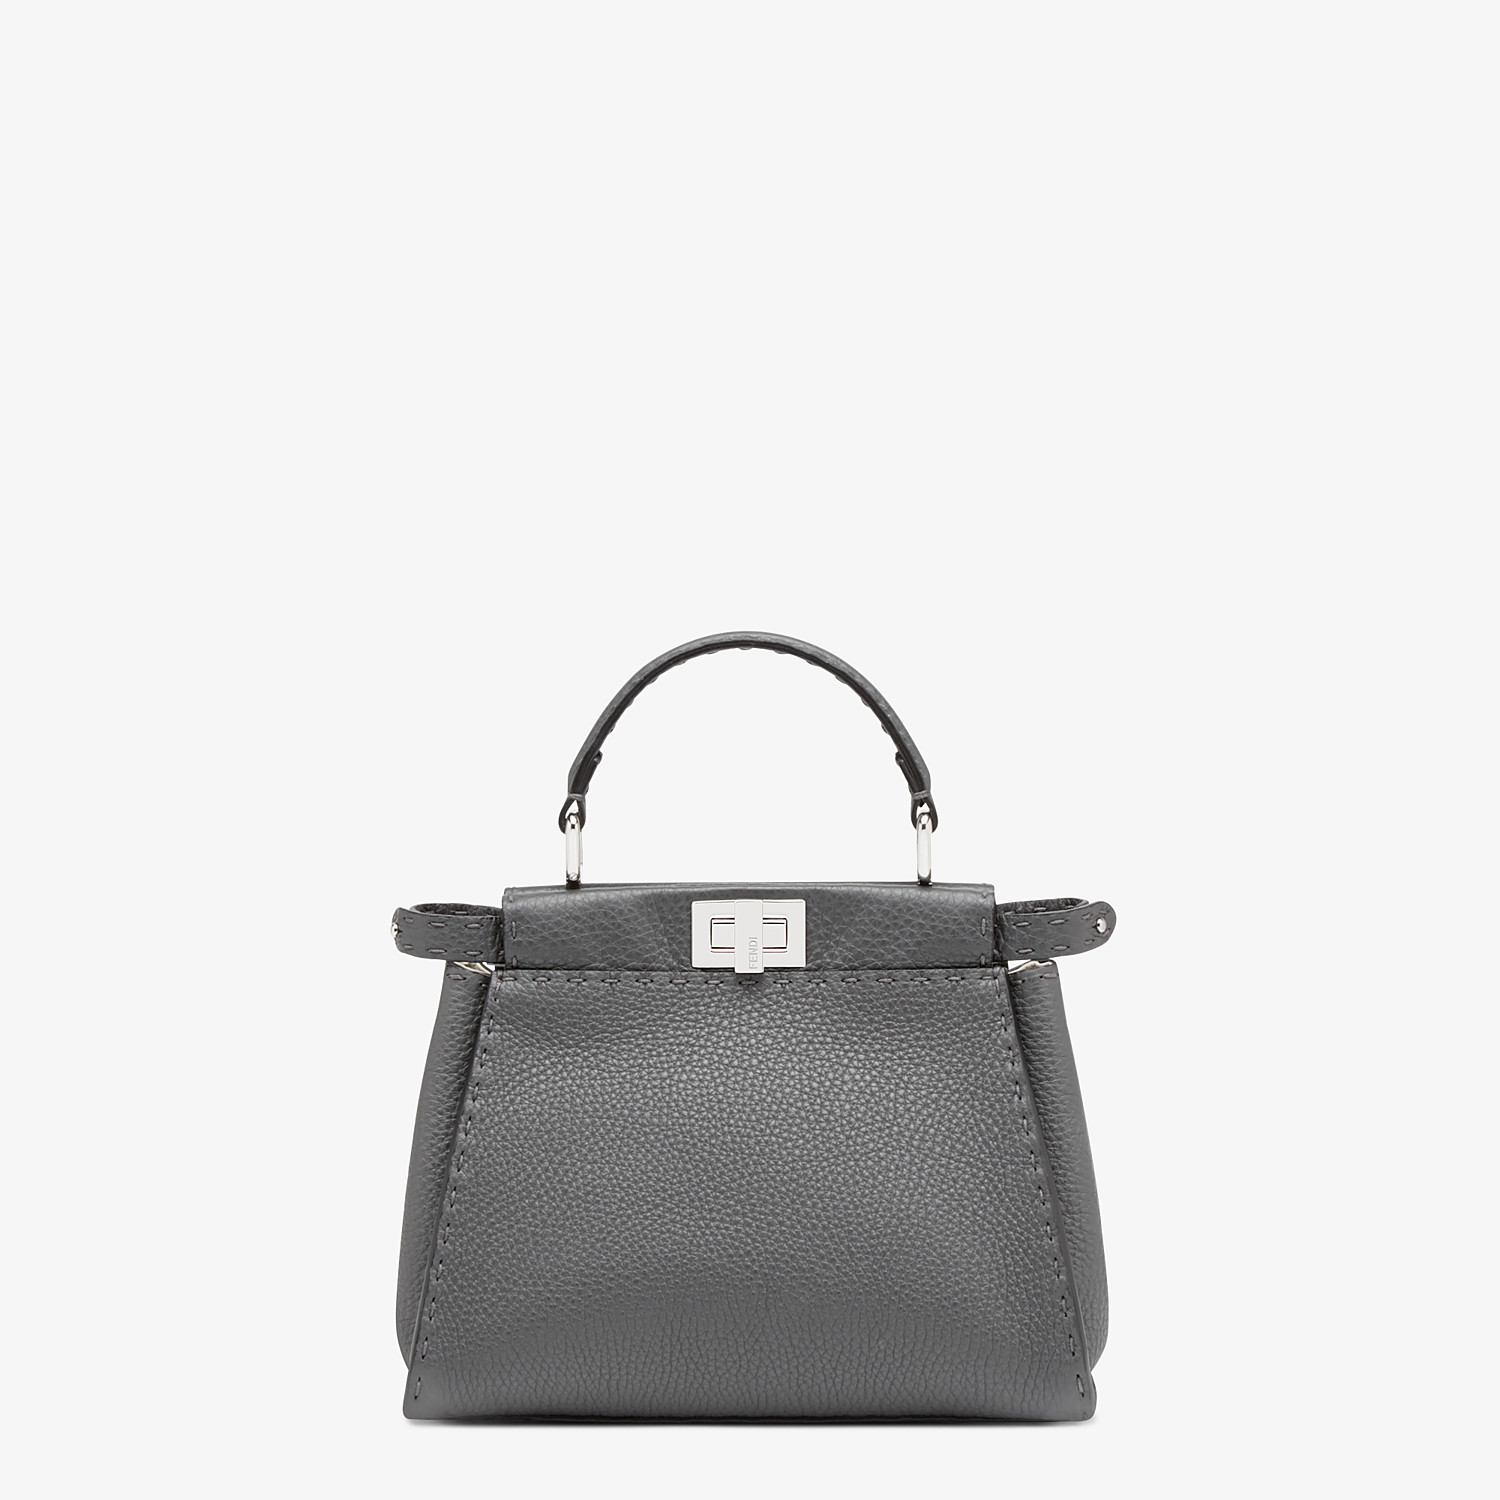 FENDI PEEKABOO ICONIC MINI - Asphalt gray Selleria bag - view 1 detail